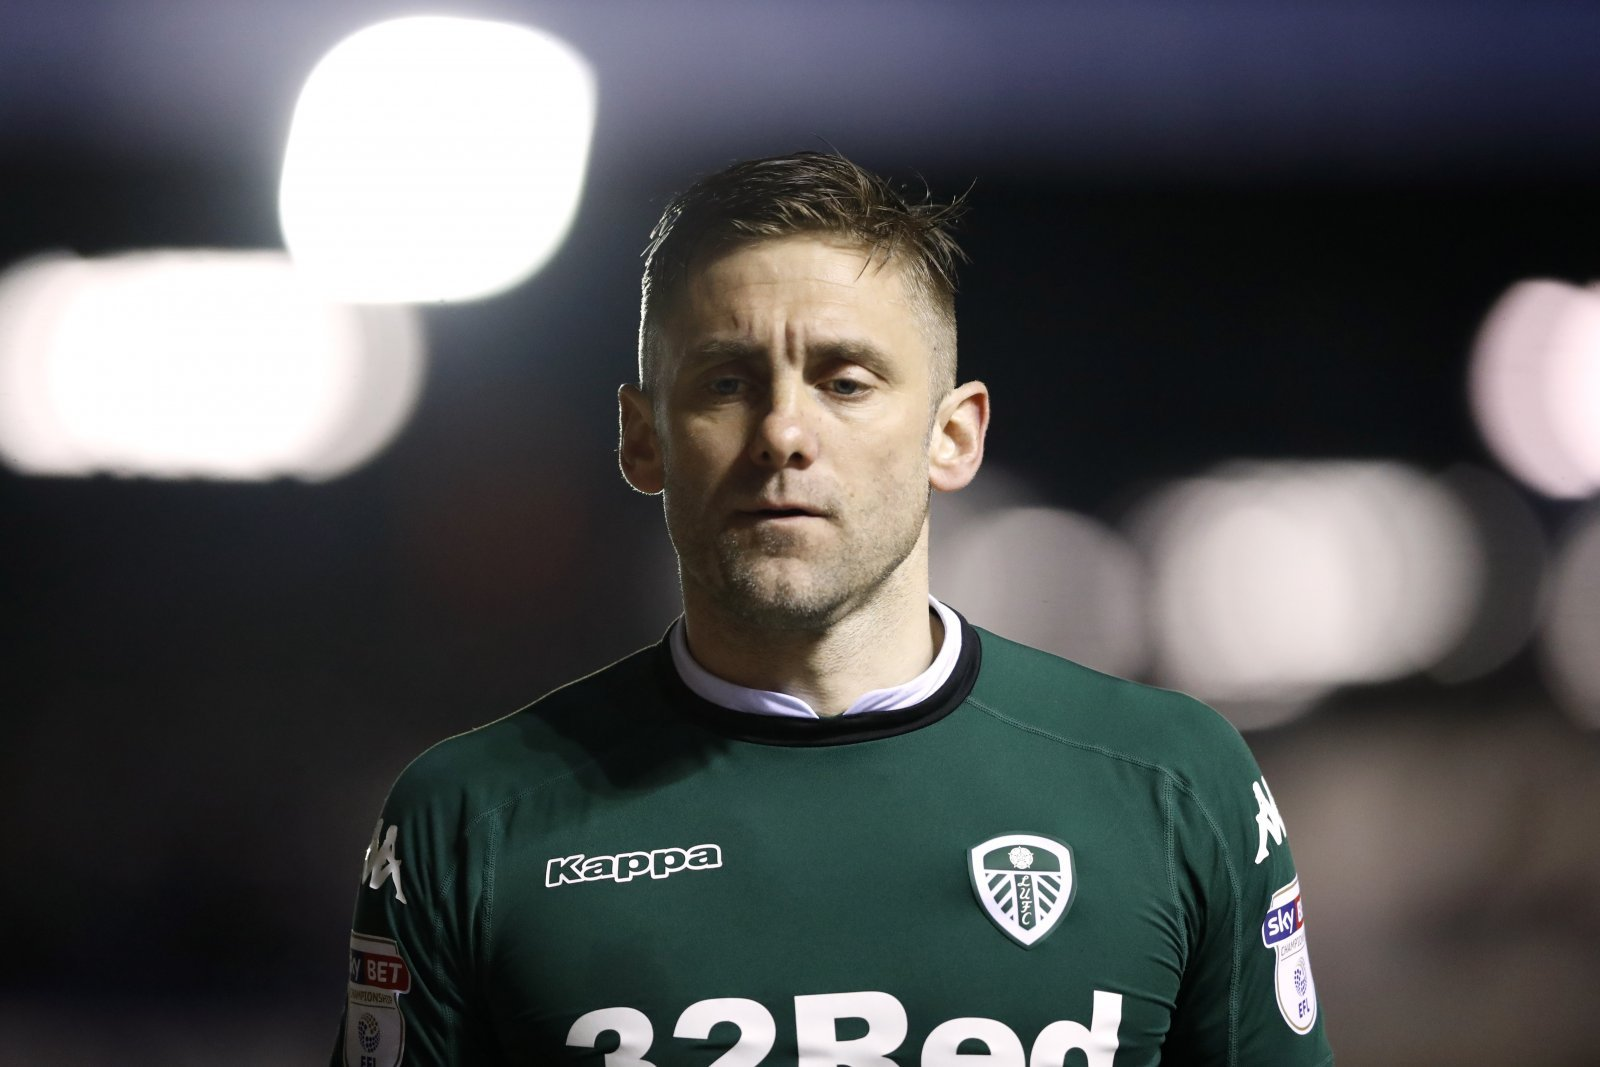 Chelsea fans are bemused by the arrival of Robert Green